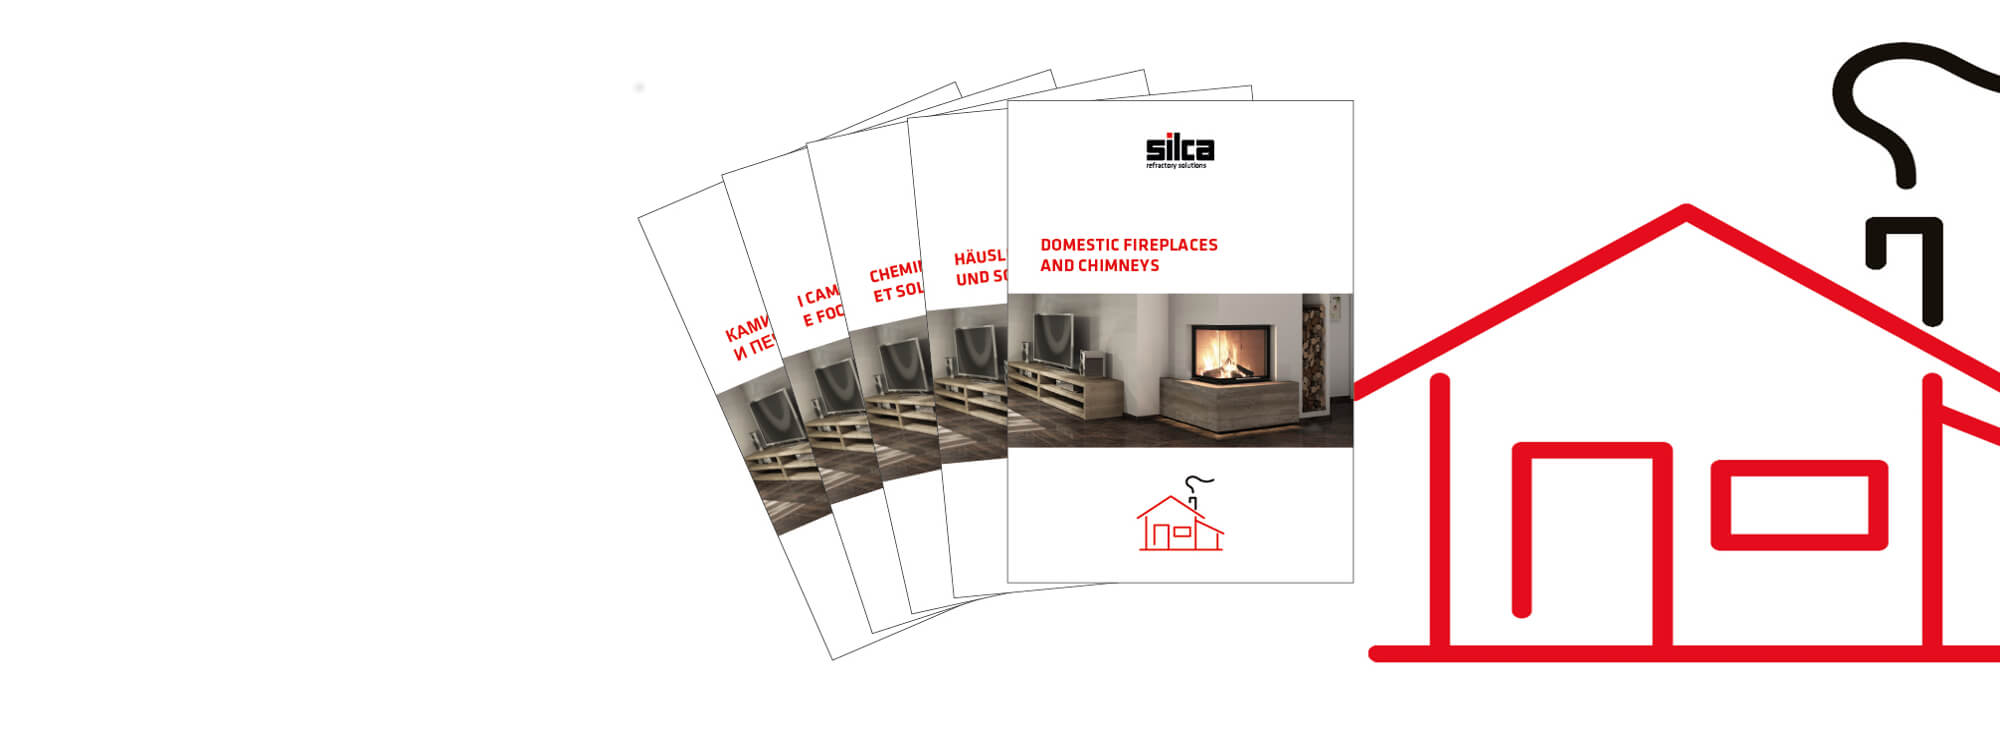 SILCA - Domestic fireplaces and chimneys